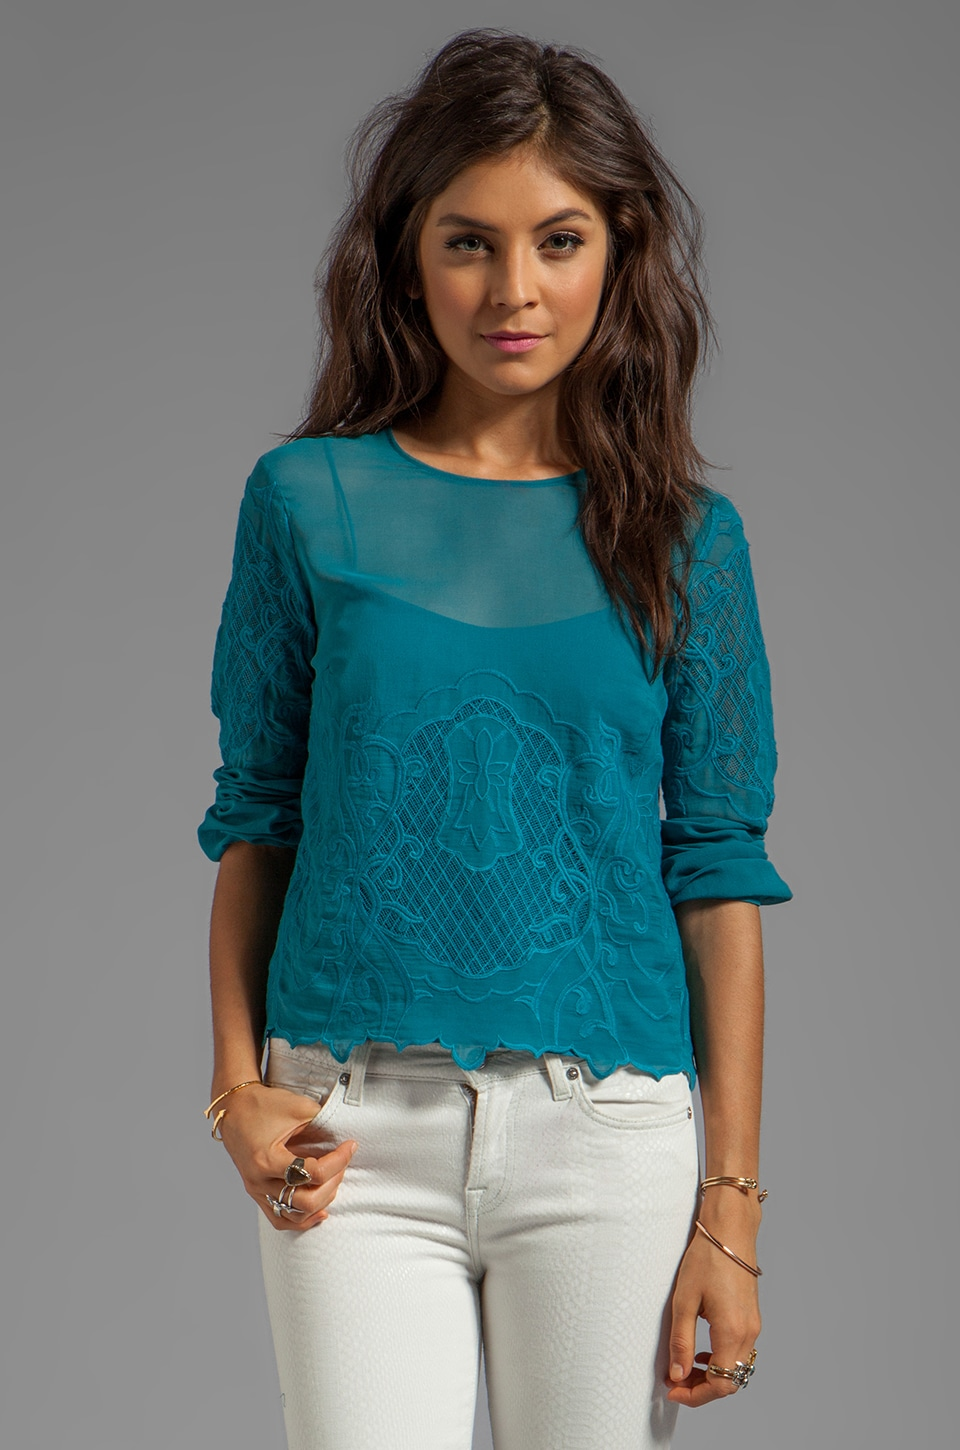 Dolce Vita Odelina New Baroque Top in Teal